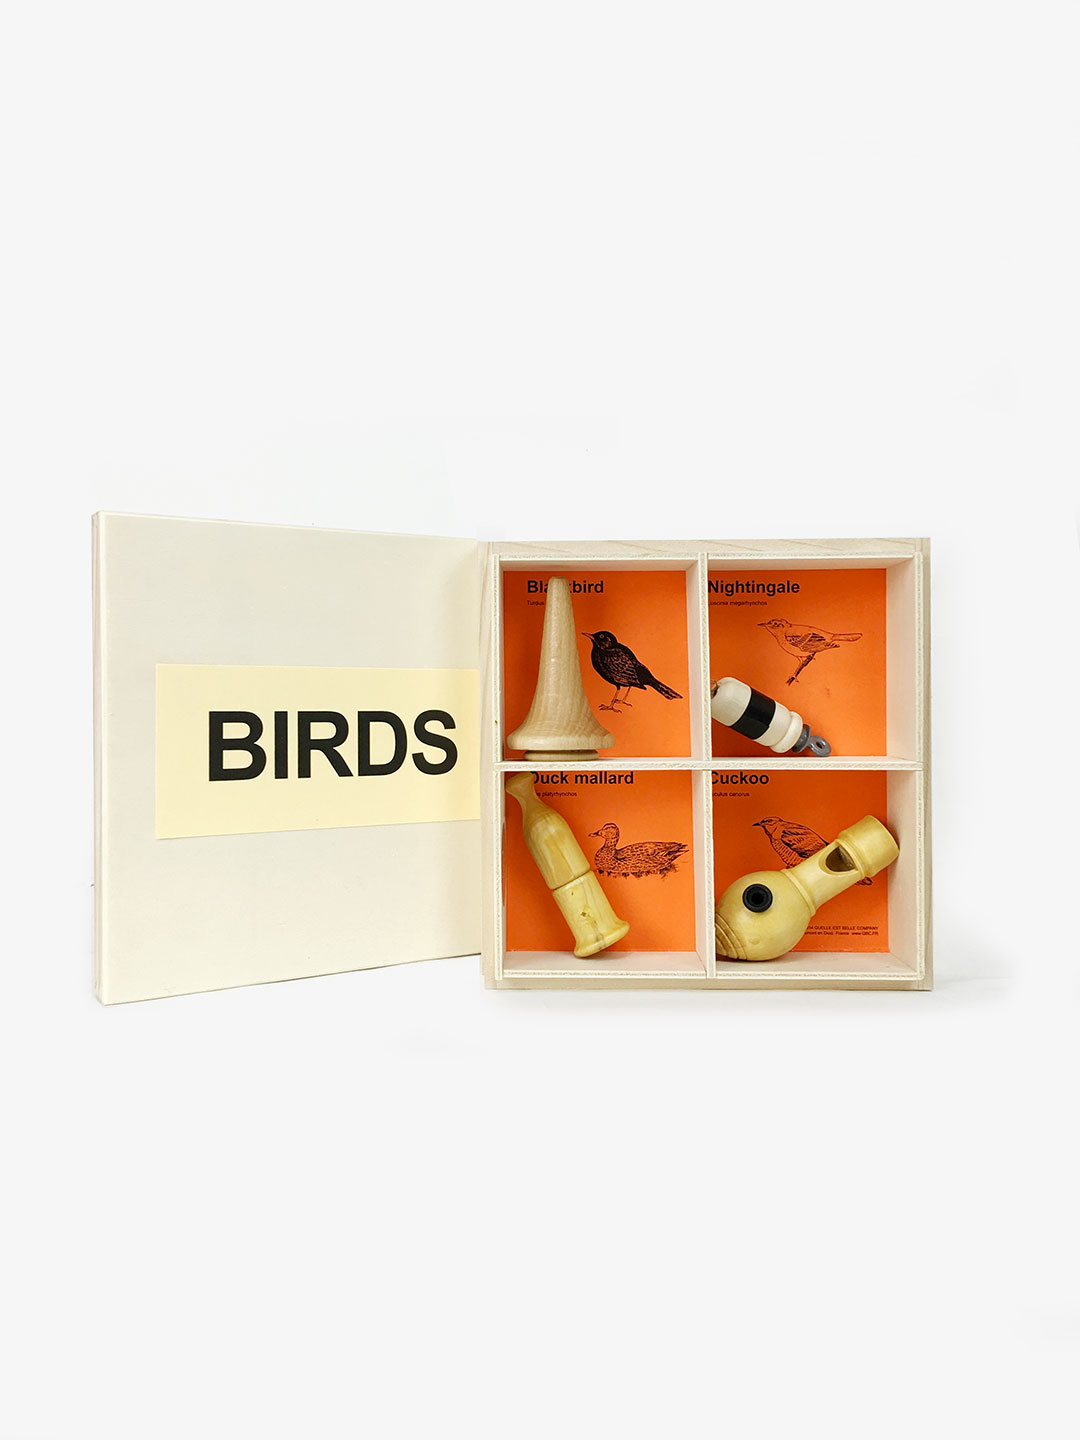 4 Nests Bird Calls Gift Box